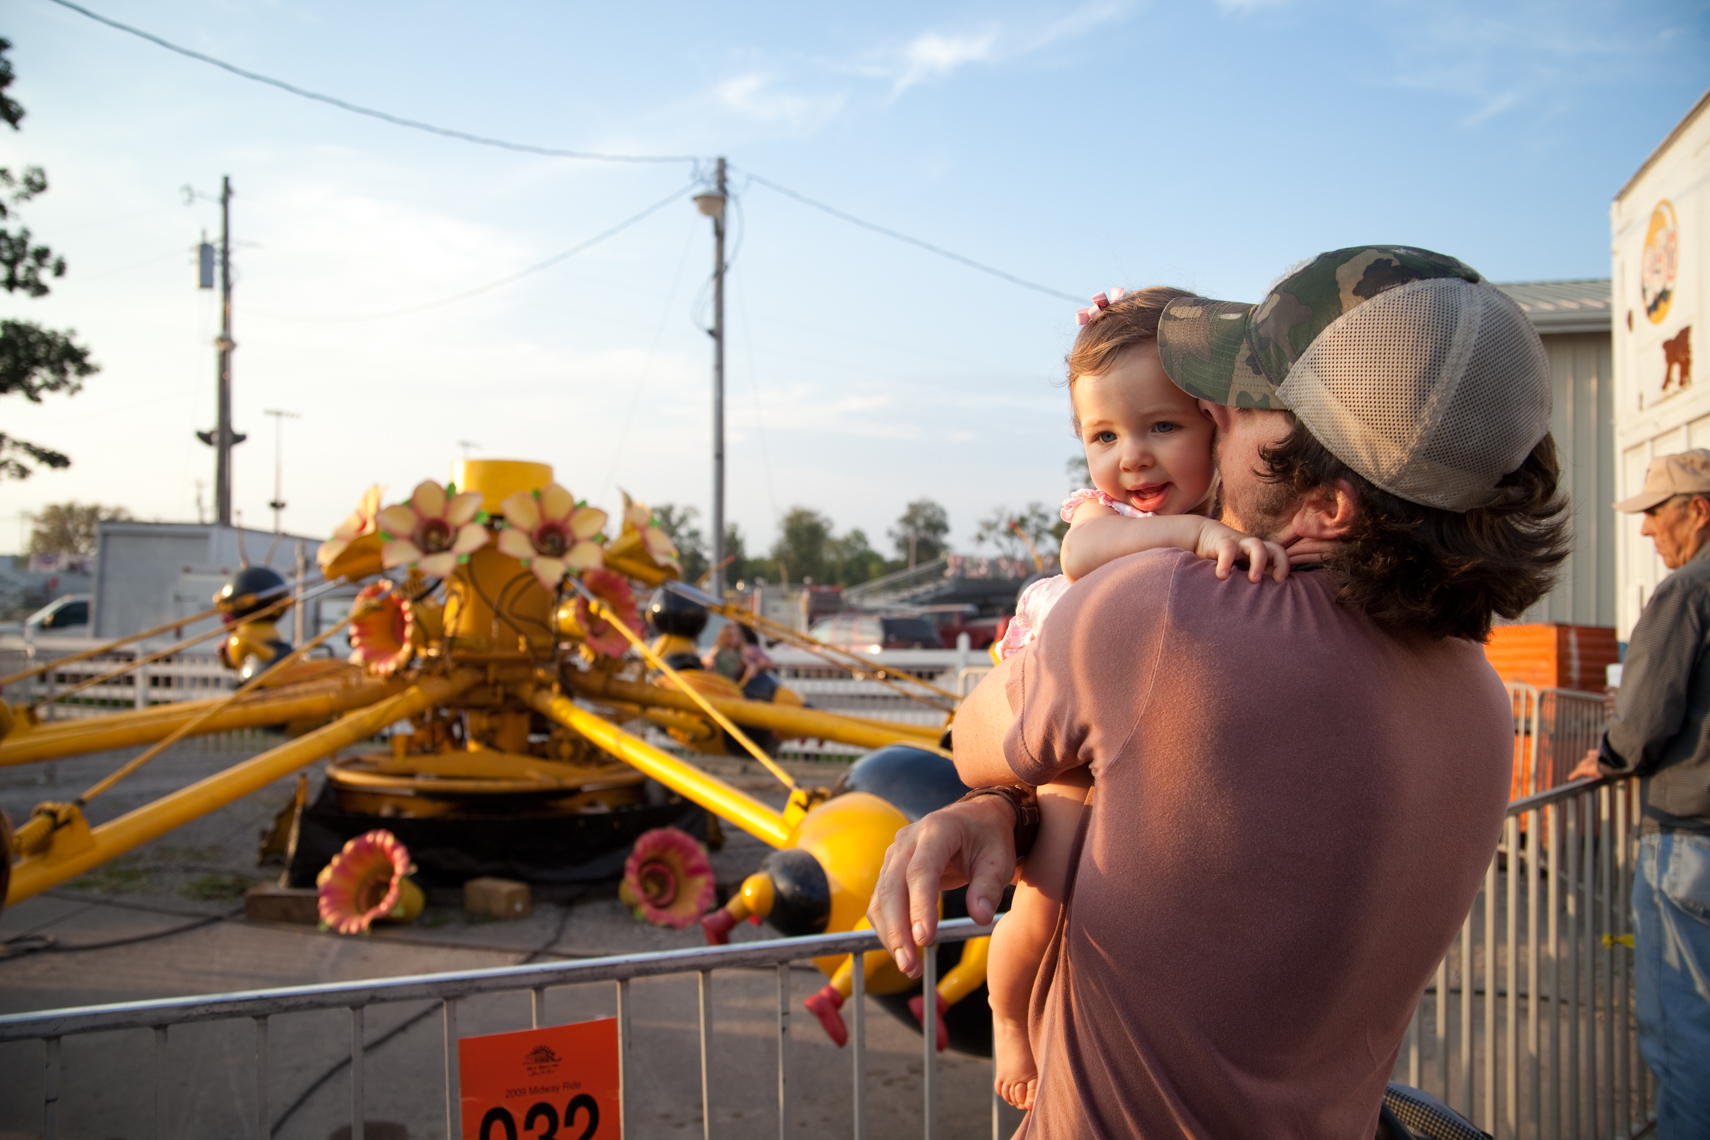 Young father kisses his baby girl on her cheek. Wilson County Fair, Lebanon, Tennessee, carnival, amusement park, rural south, kiss, hug, kissing,Documentary, Editorial, Photojournalist in Nashville, Southeast, South, Texas, Atlanta, New Orleans, Chicago,